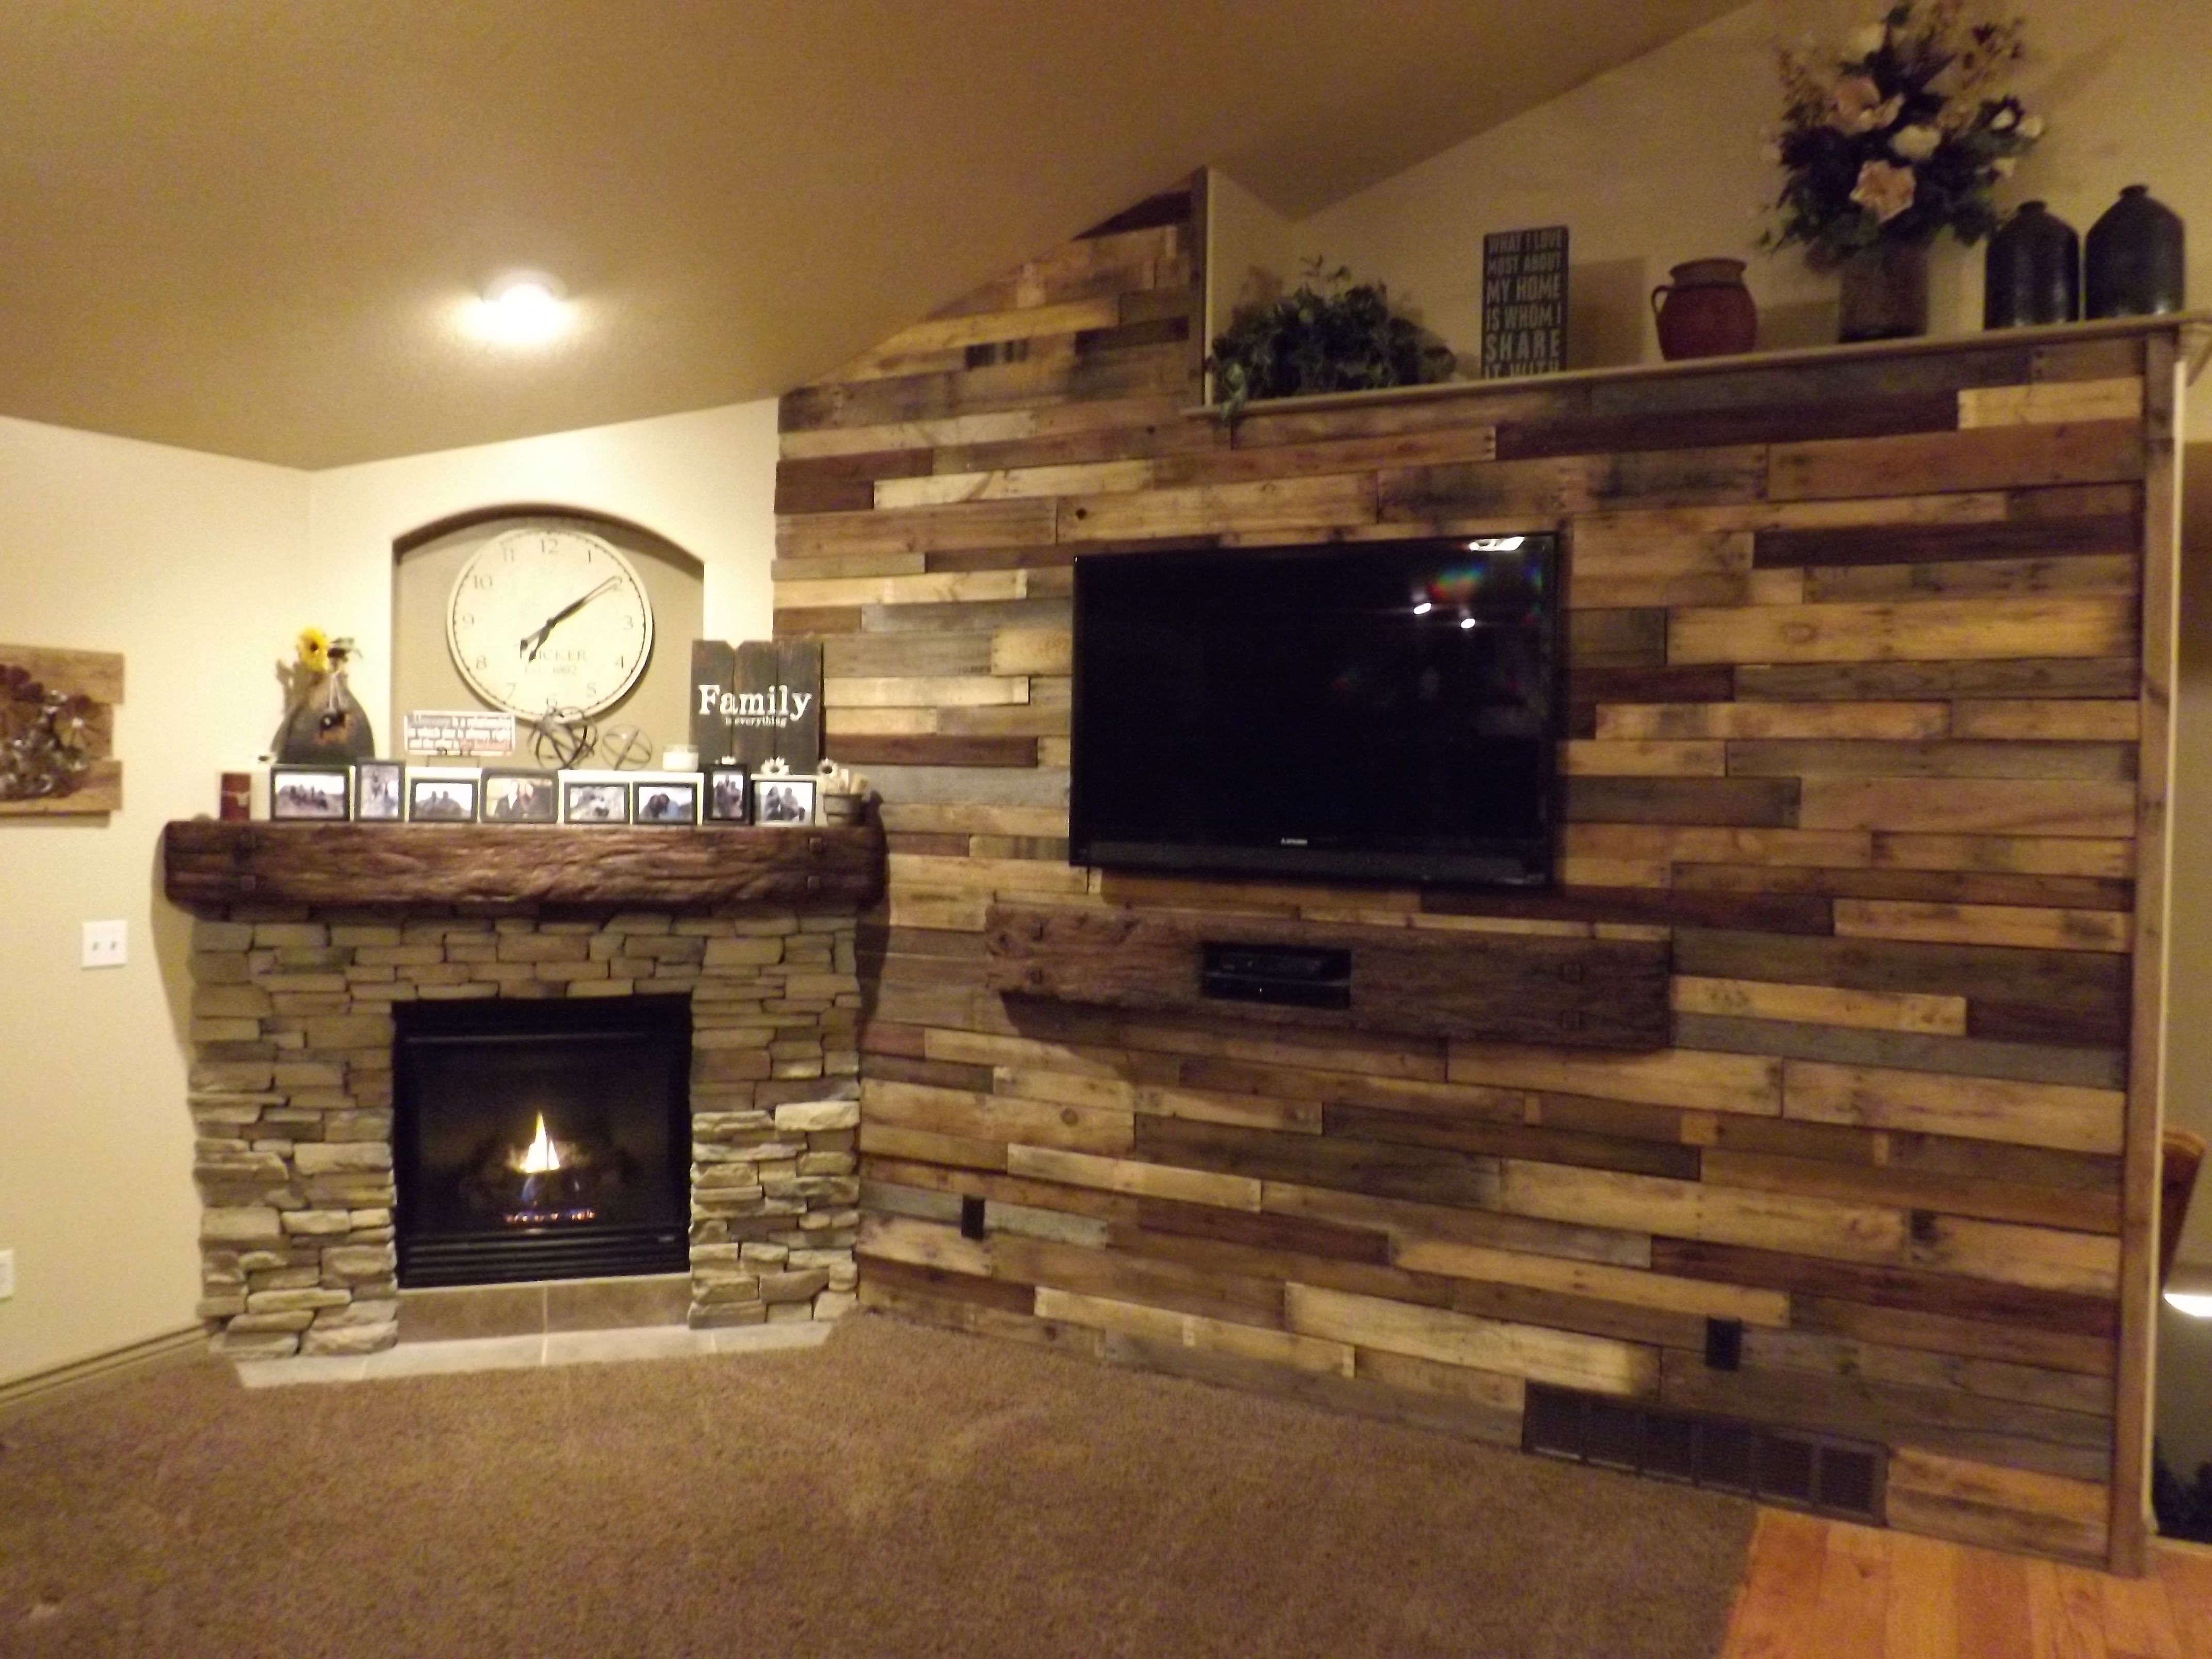 Pallet Wood Wall And Stone Fireplace Surround With A Rustic Beam